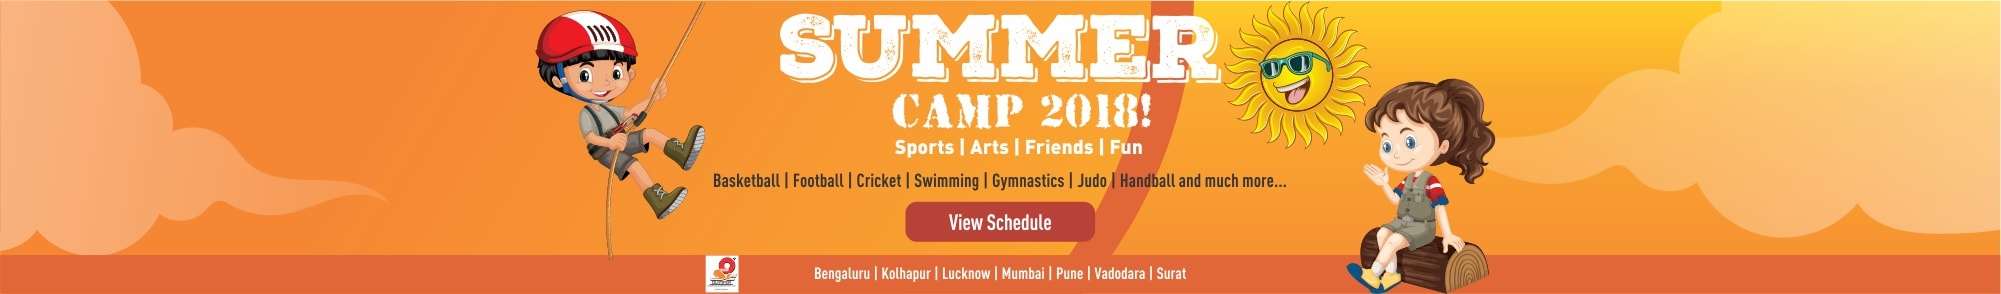 VIBGYOR High School Pune (Yerwada) Summercamp